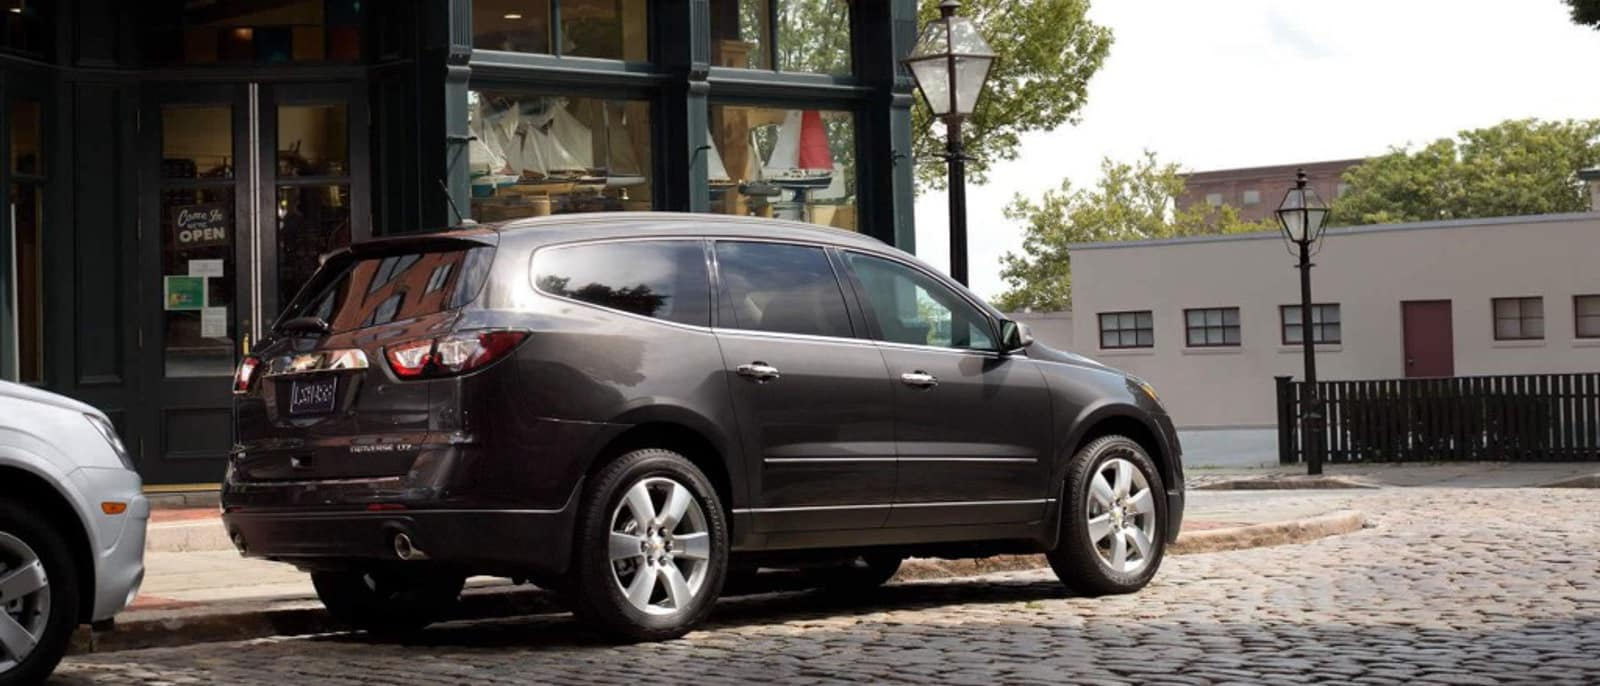 hight resolution of  2015 chevy traverse side view